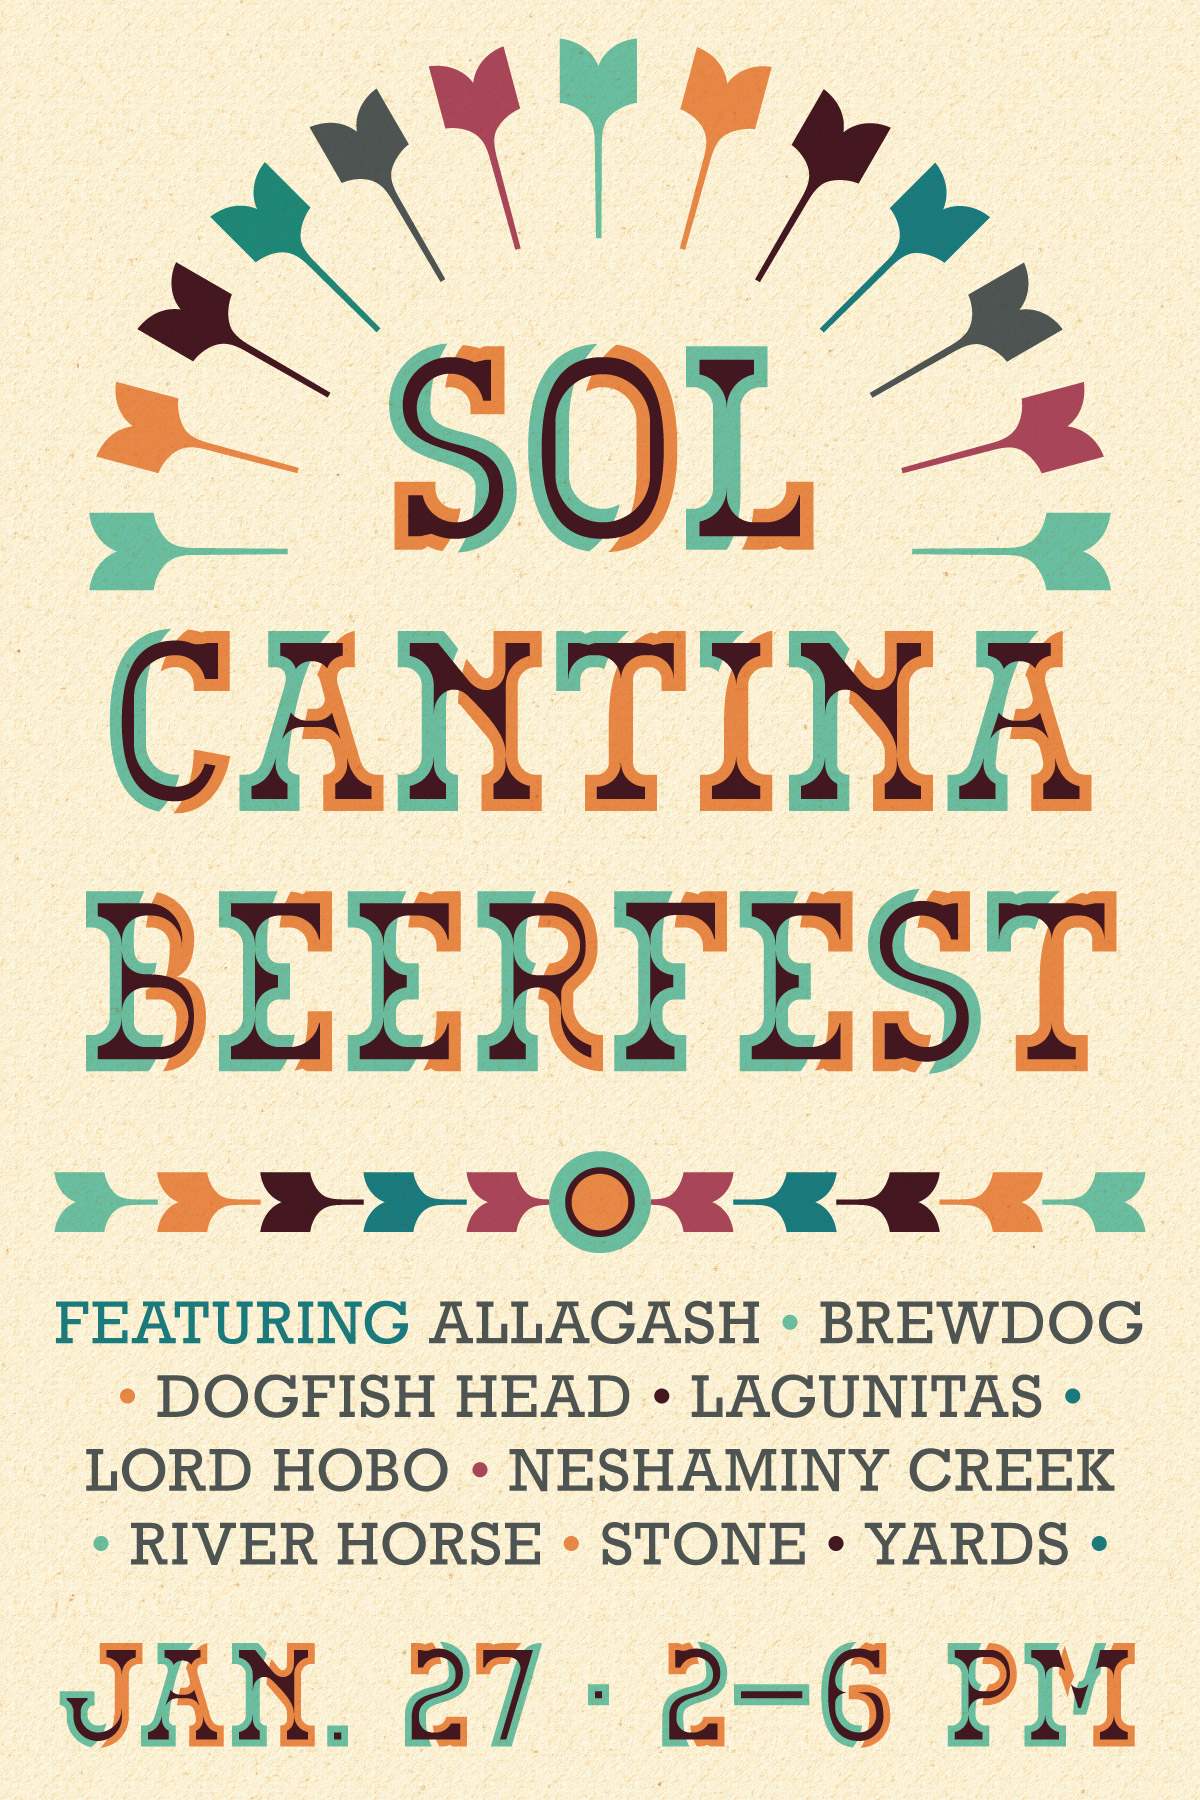 sol-cantina_beerfest-2019-posters_01-03-19